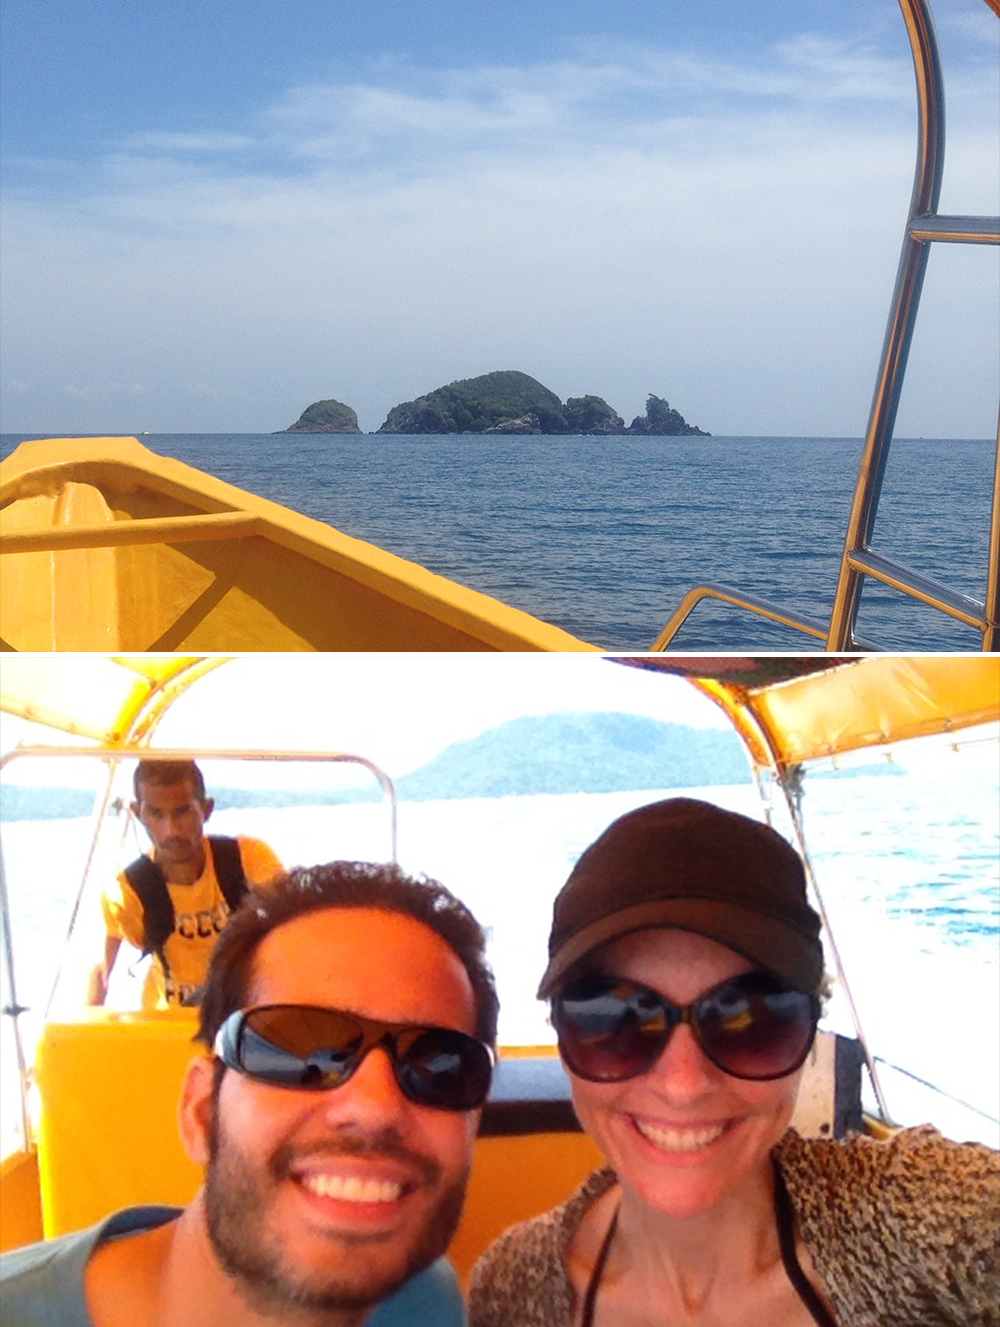 ONE OF THE MANY BOAT RIDES WE TOOK OUT TO SNORKEL.